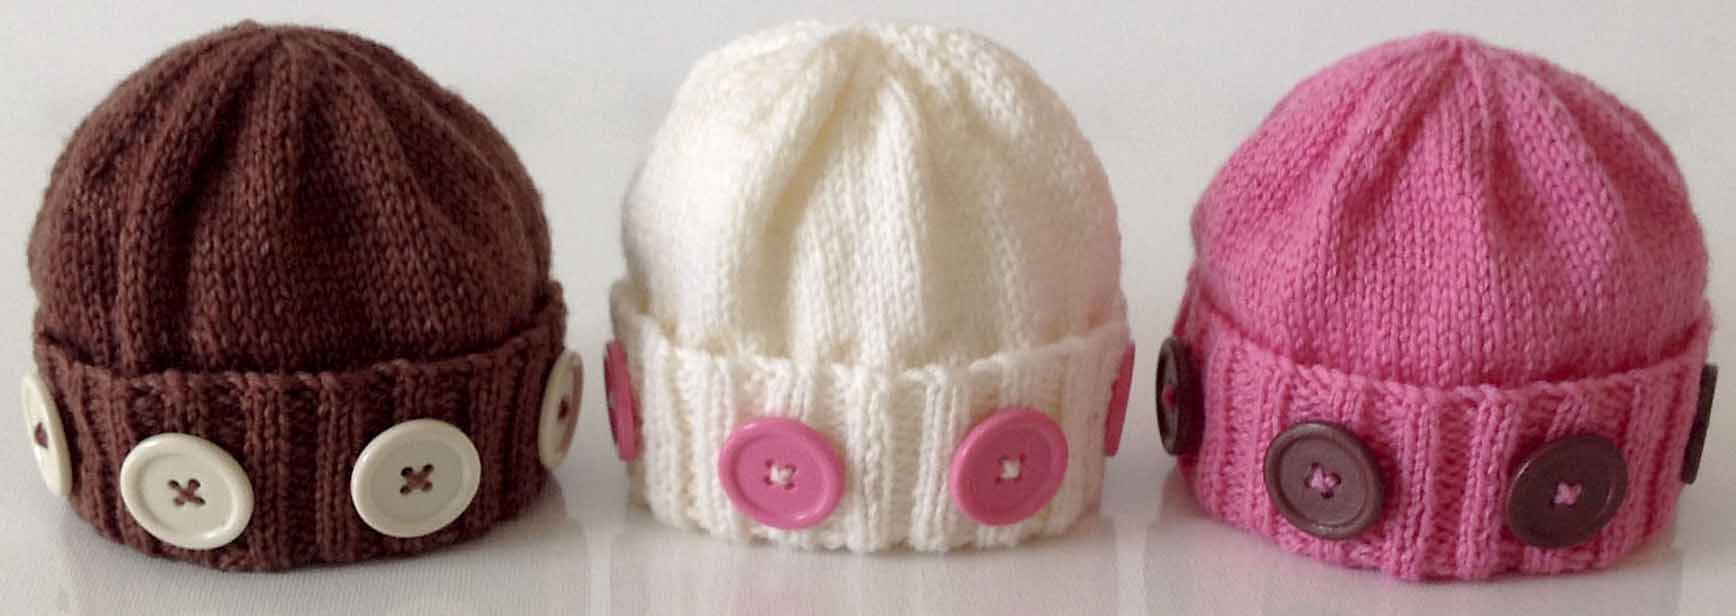 knitting patterns for preemies, babies and children